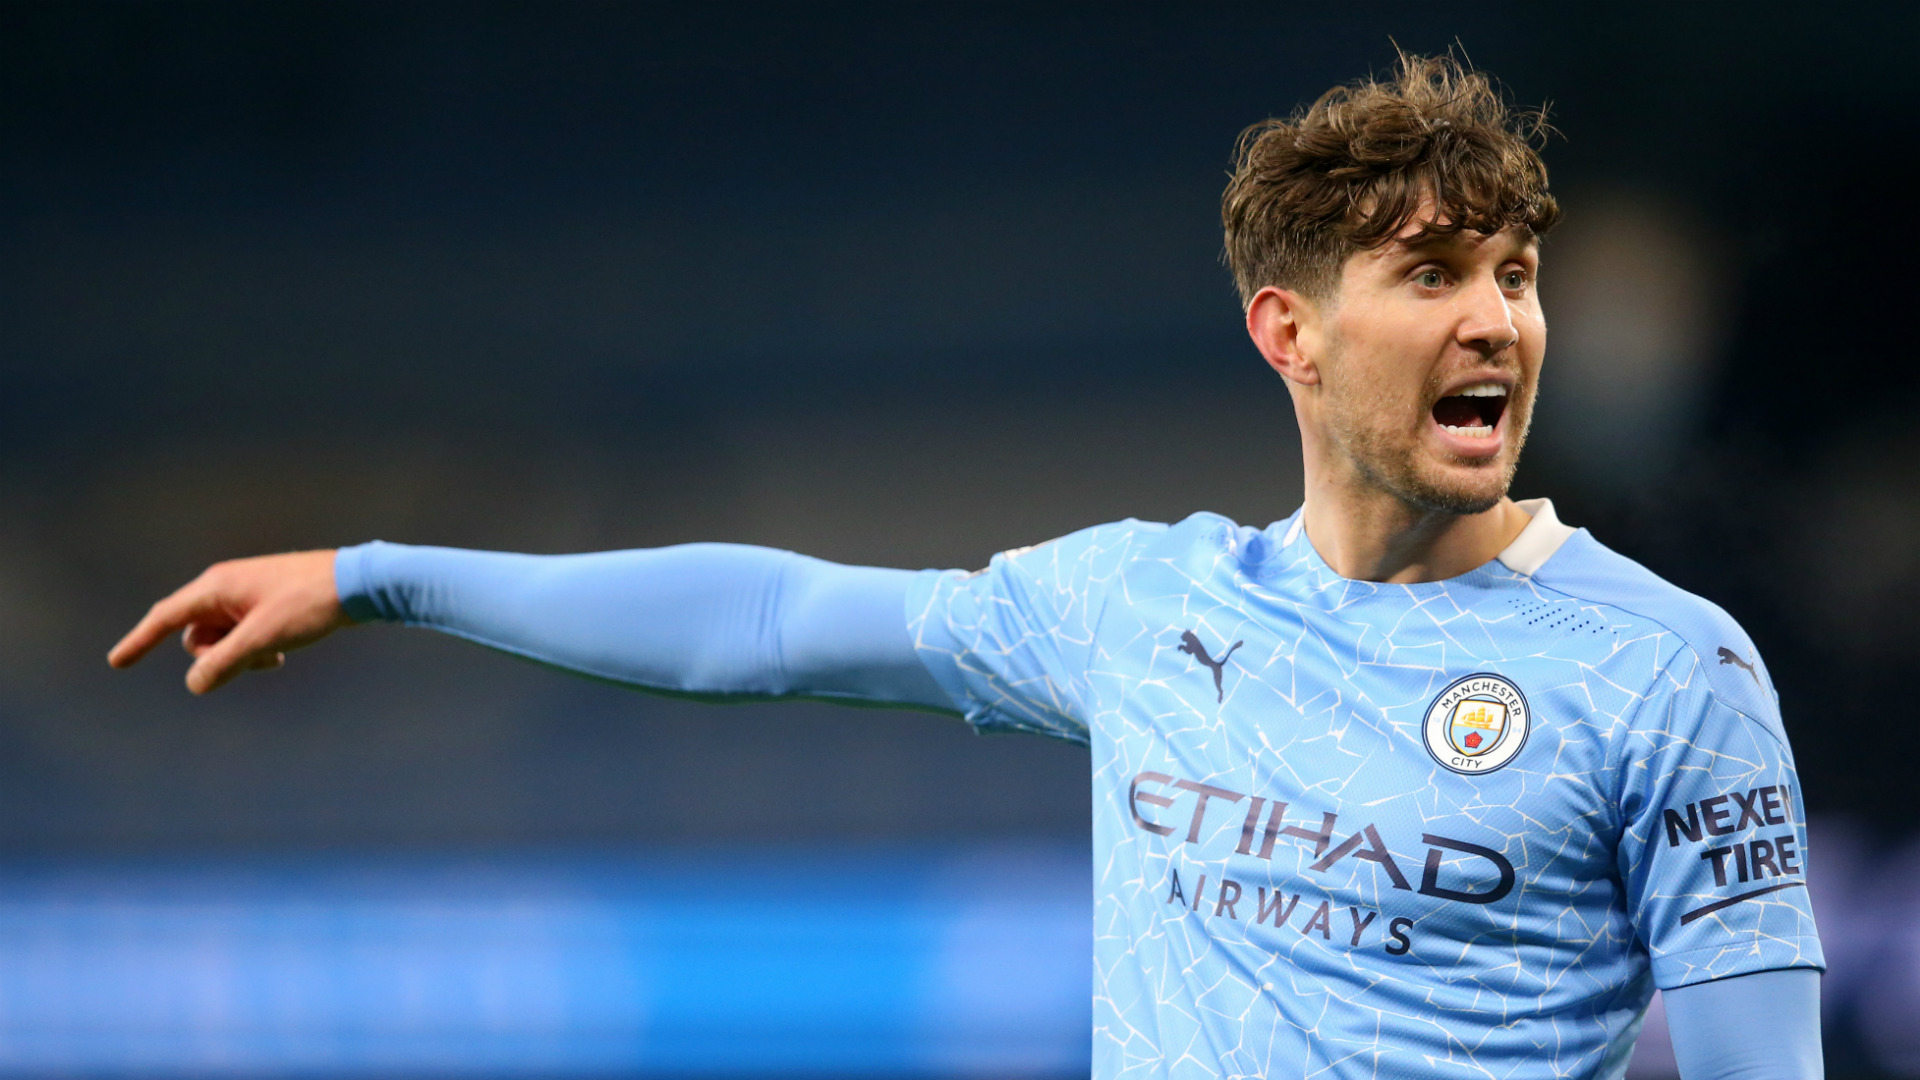 'We use disappointment as fuel' – Manchester City using past failures as motivation in Champions League, says Stones   Goal.com